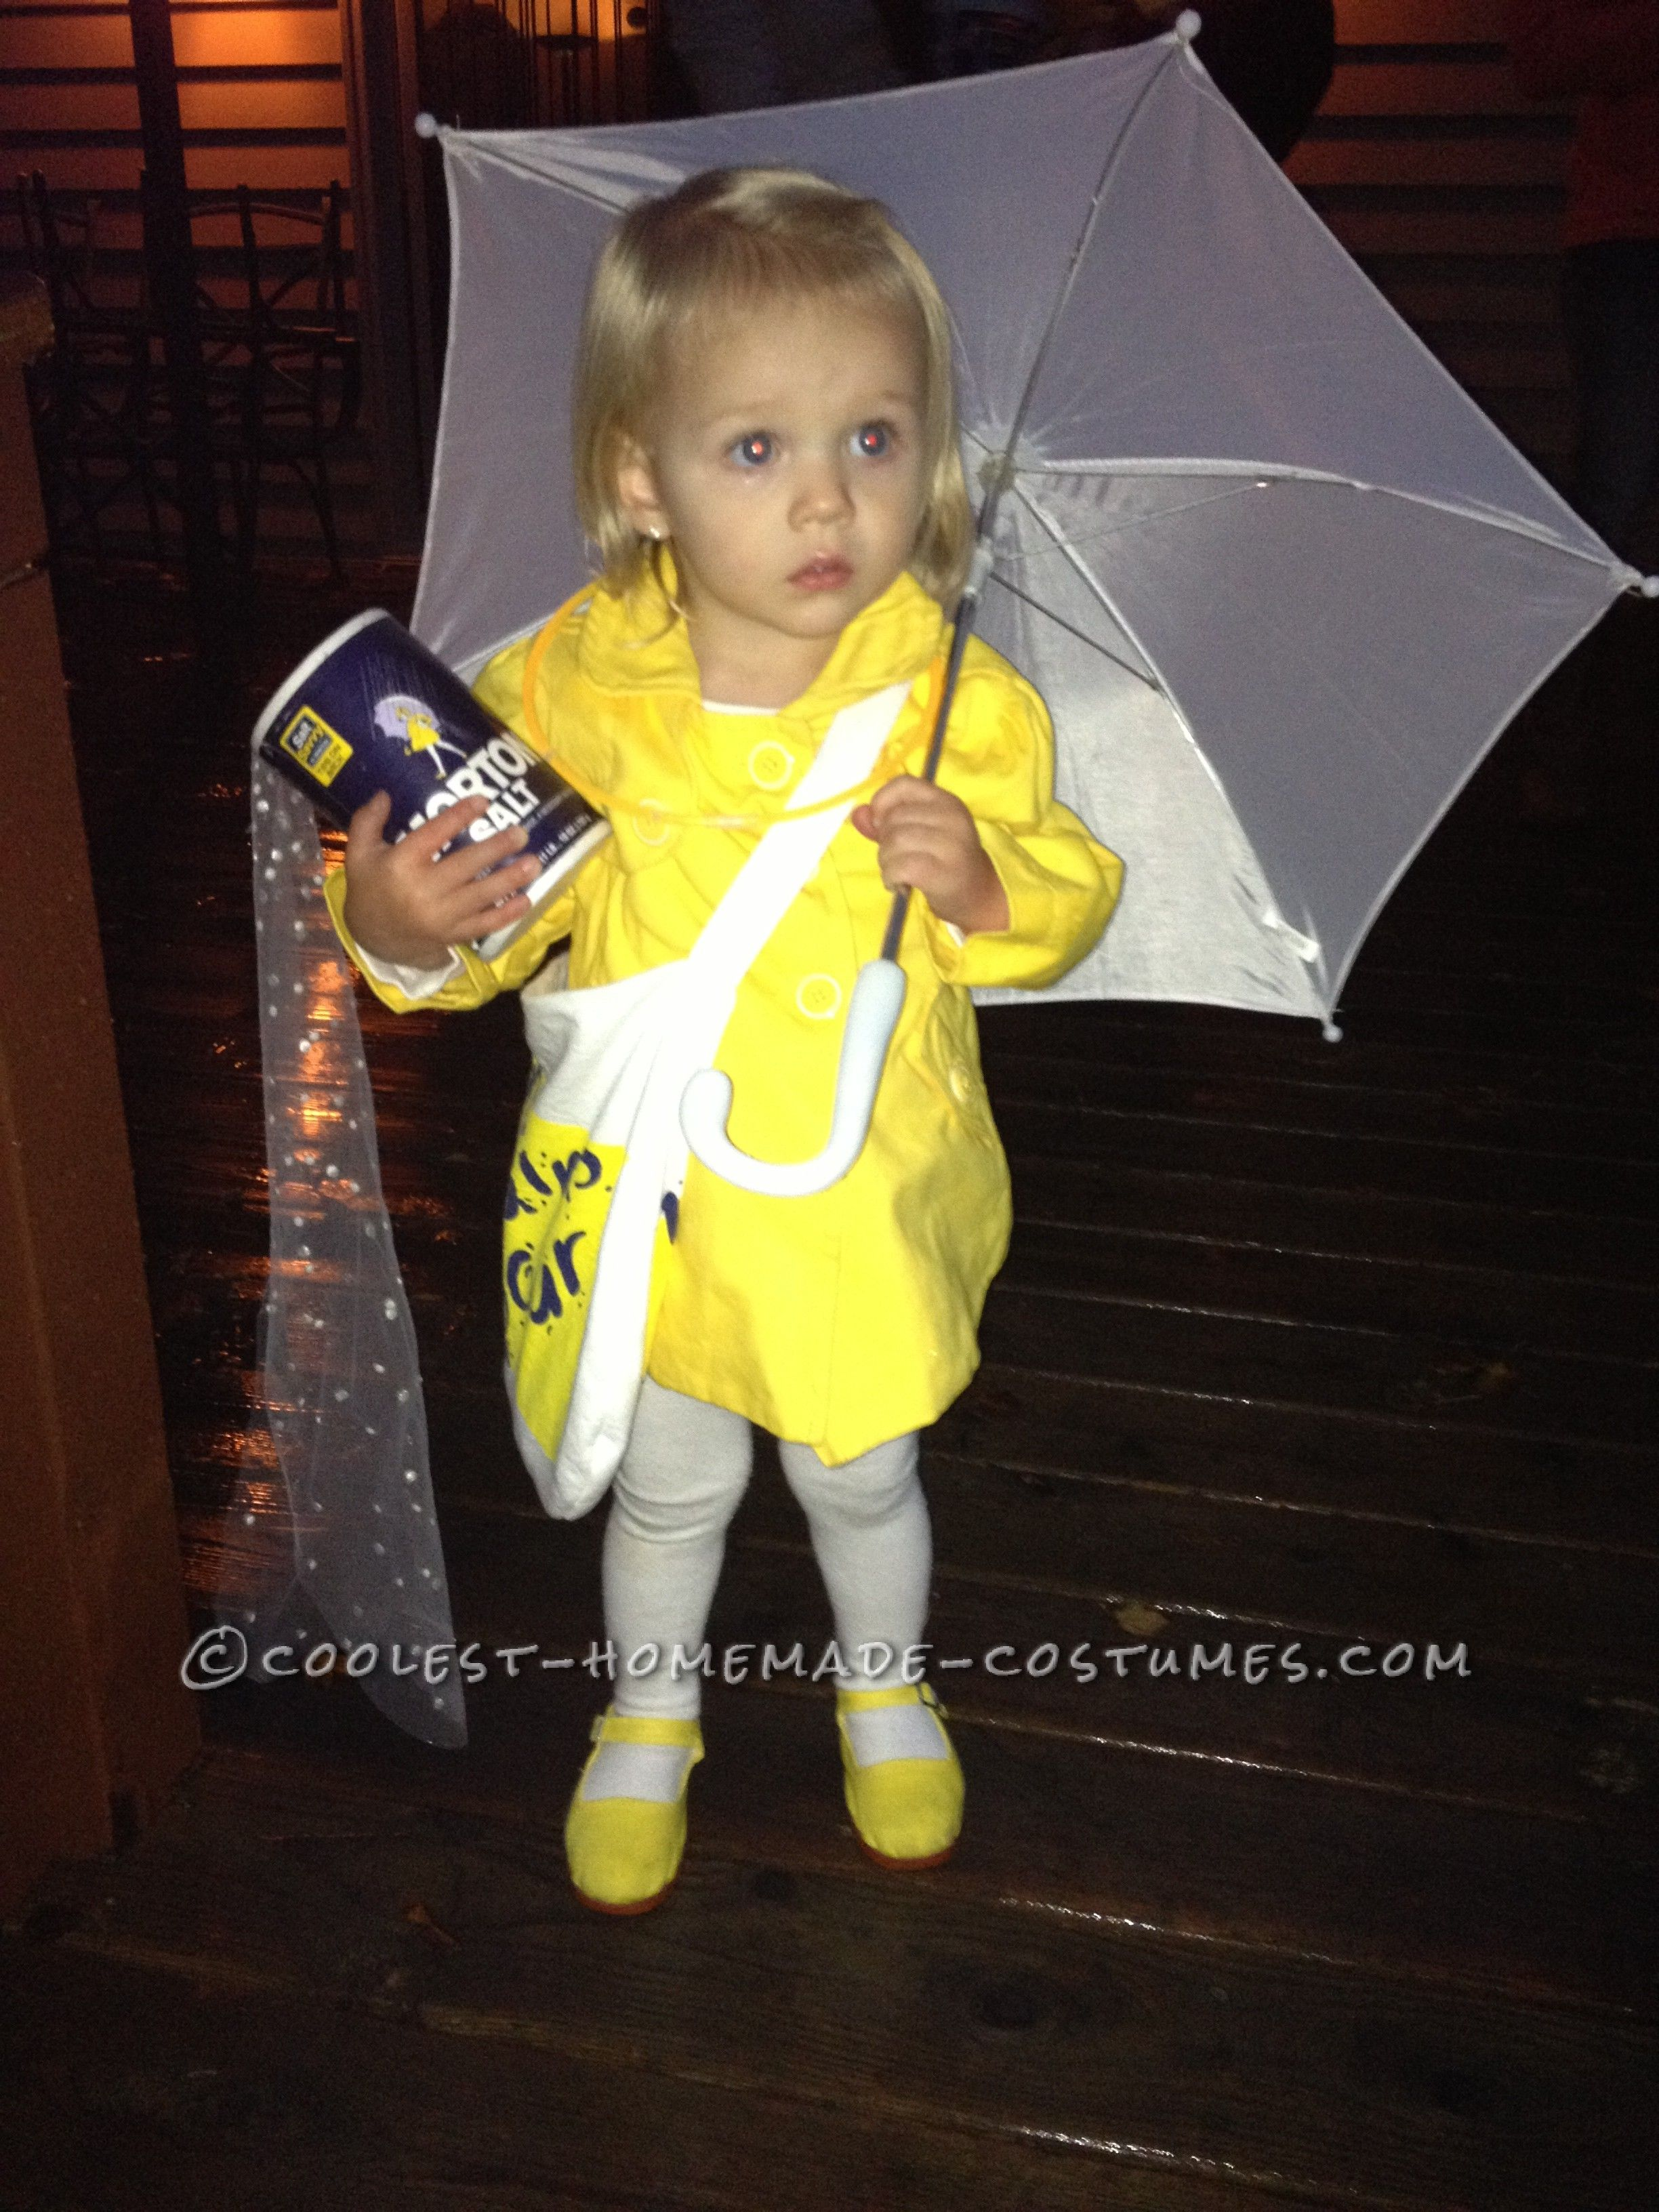 Cutest Little Morton Salt Girl Halloween Toddler Costume